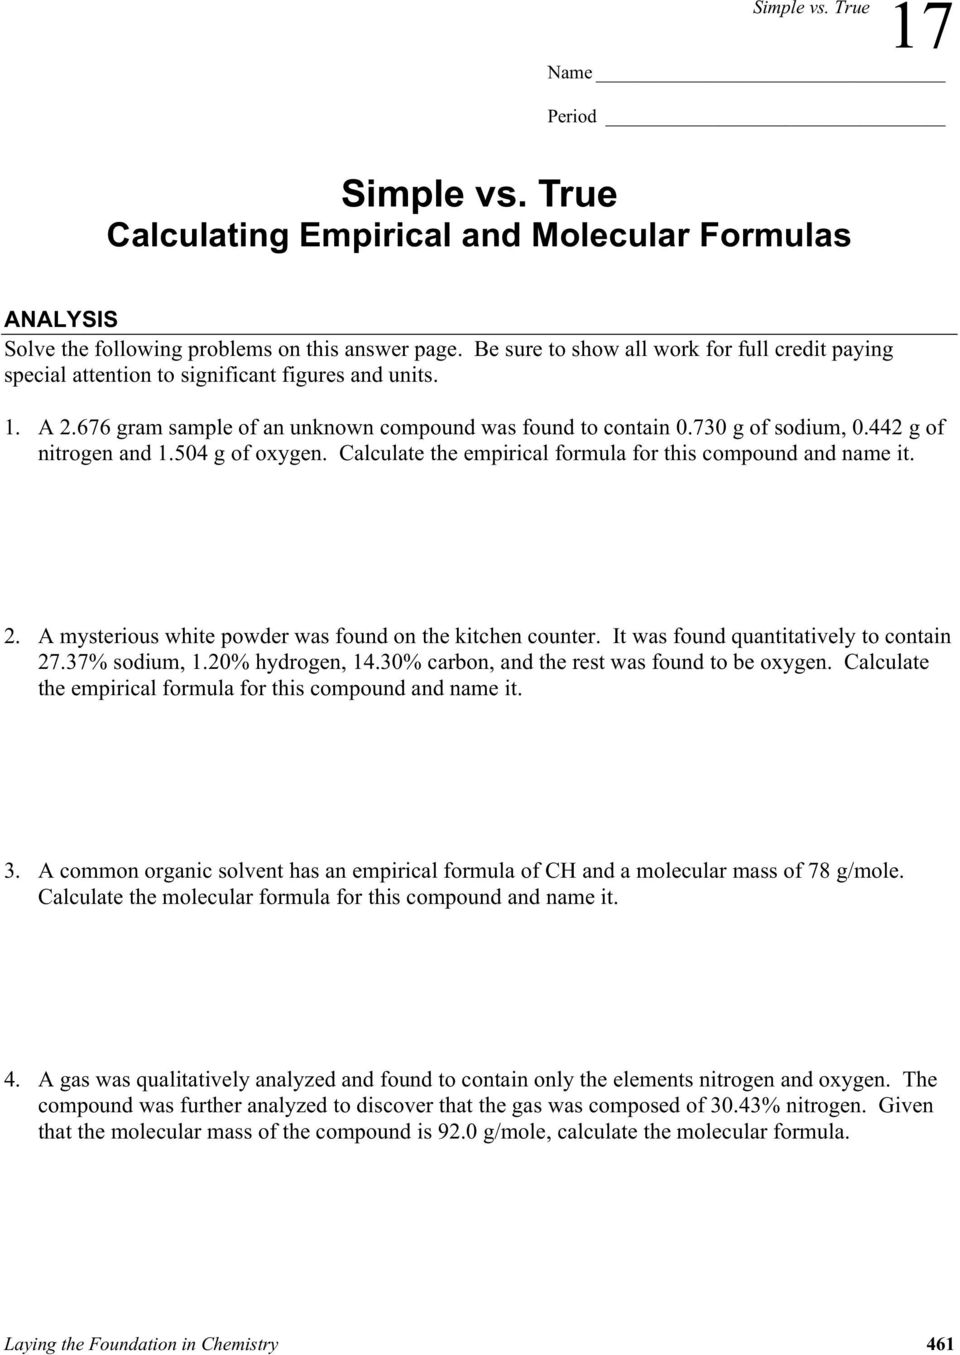 Simple Vs True Simple Vs True Calculating Empirical And